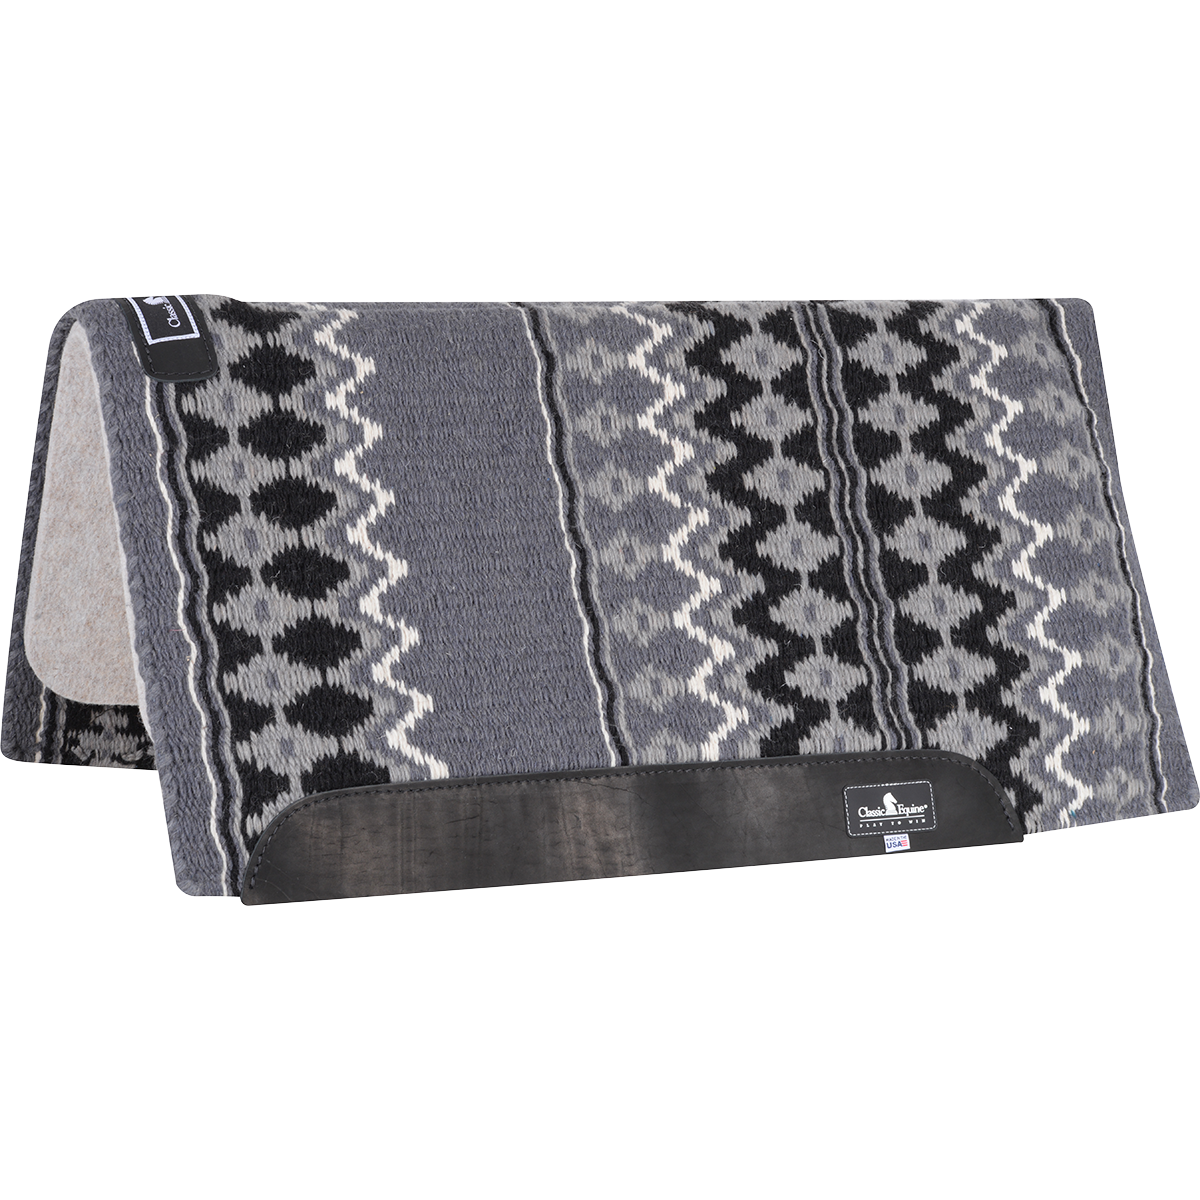 Classic Equine Classic WOOL TOP PAD 32x34 (Charcoal/Black)